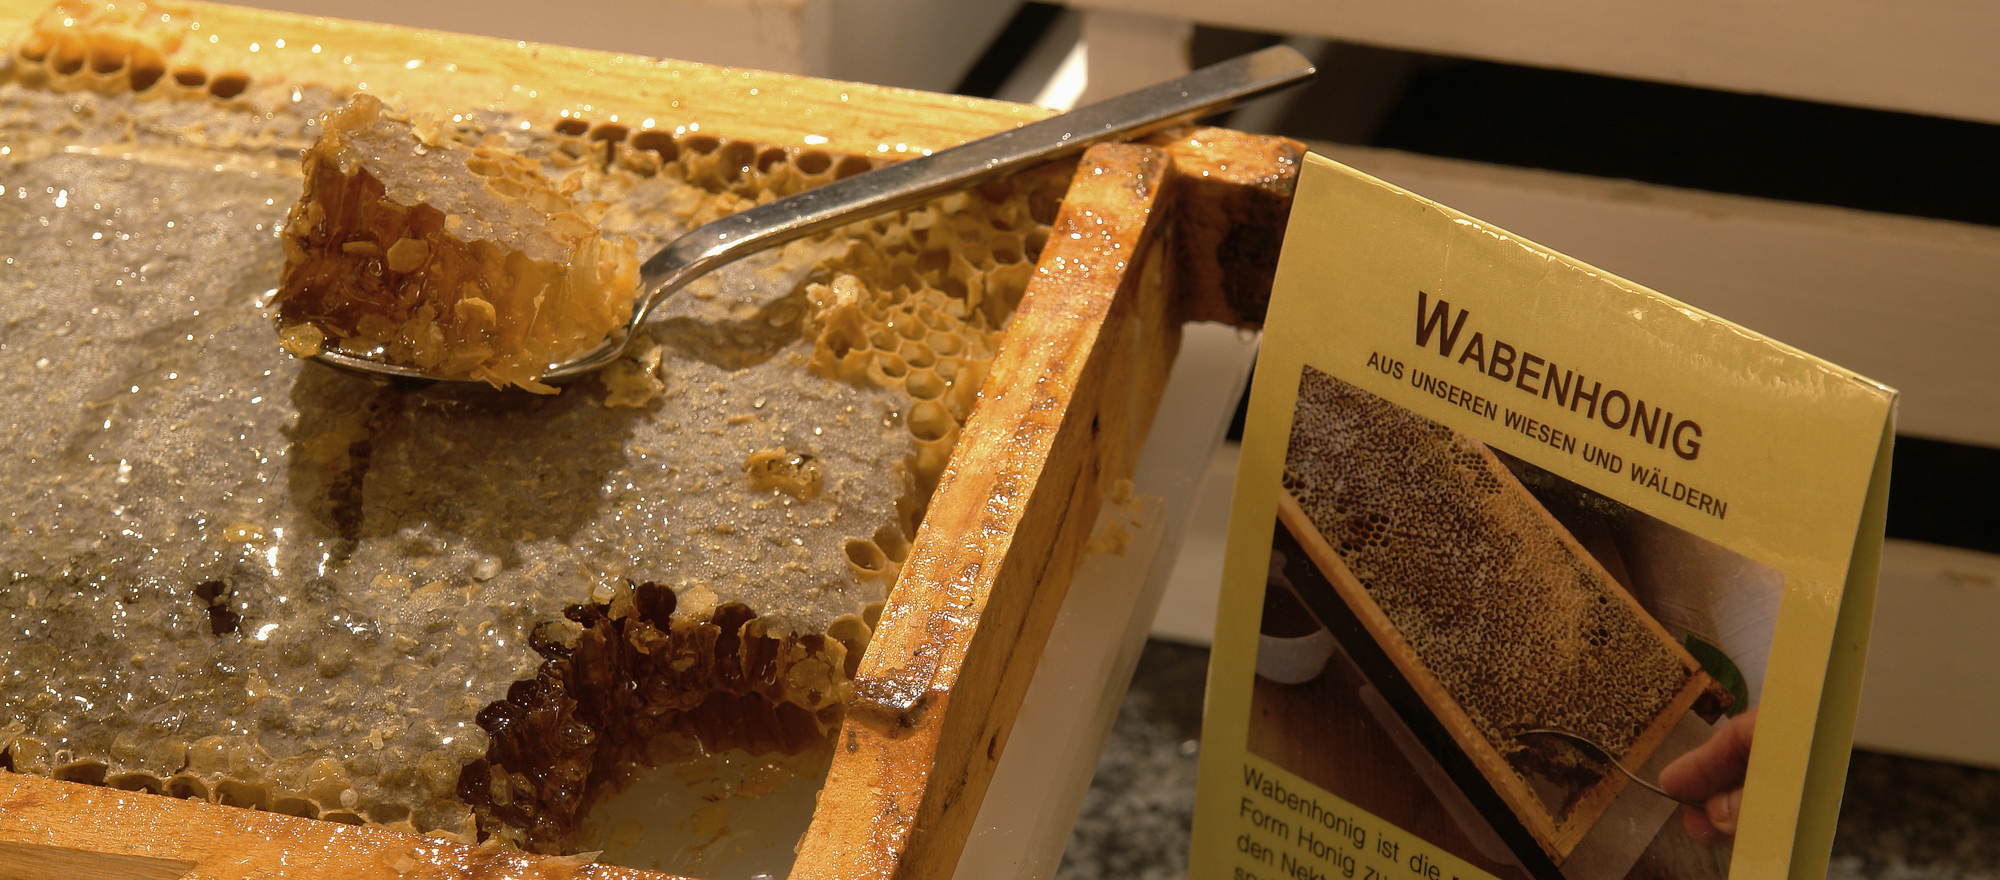 Honey in the Ringhotel Niedersachsen in Hoexter, 4 stars hotel in the Weserbergland region